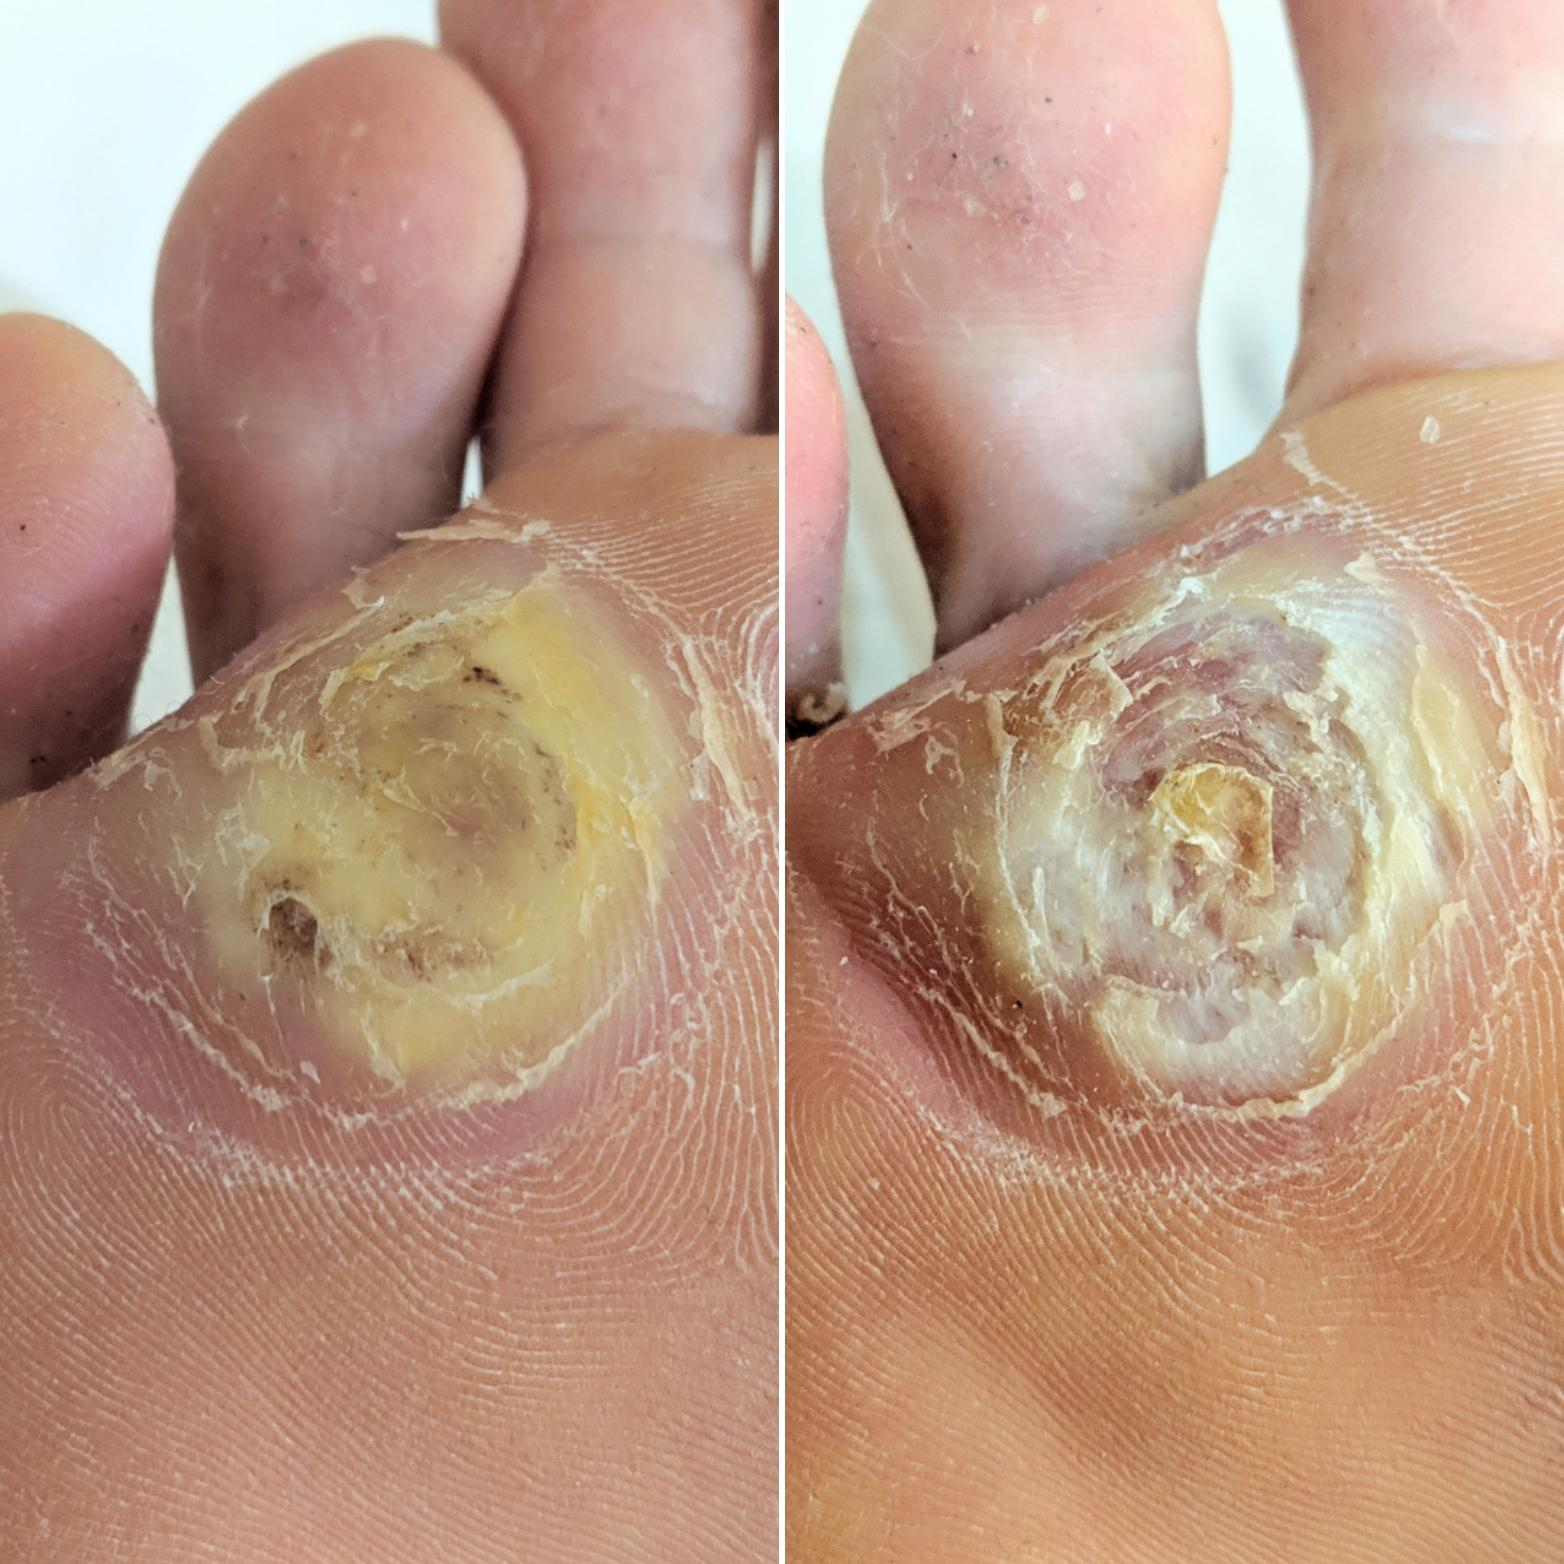 wart treatment with salicylic acid